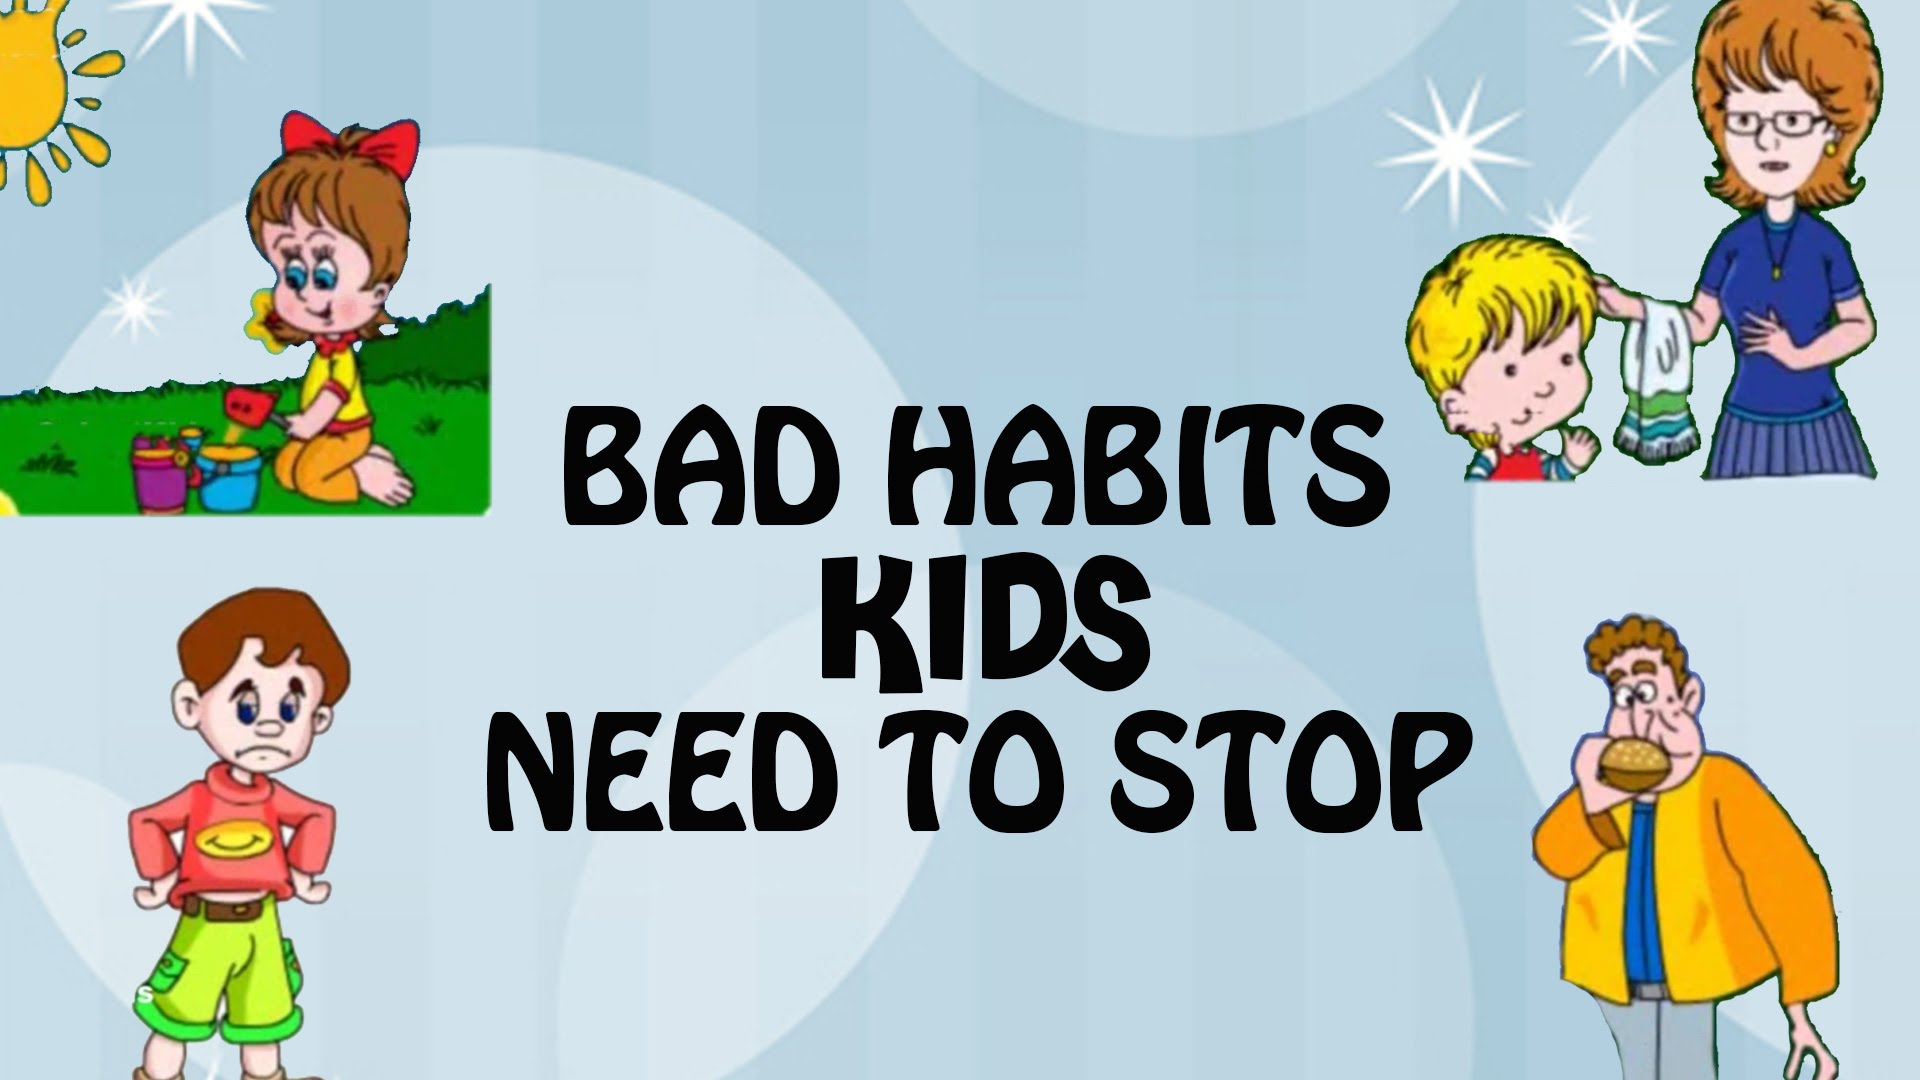 Bad Habits Kids Need To Stop.